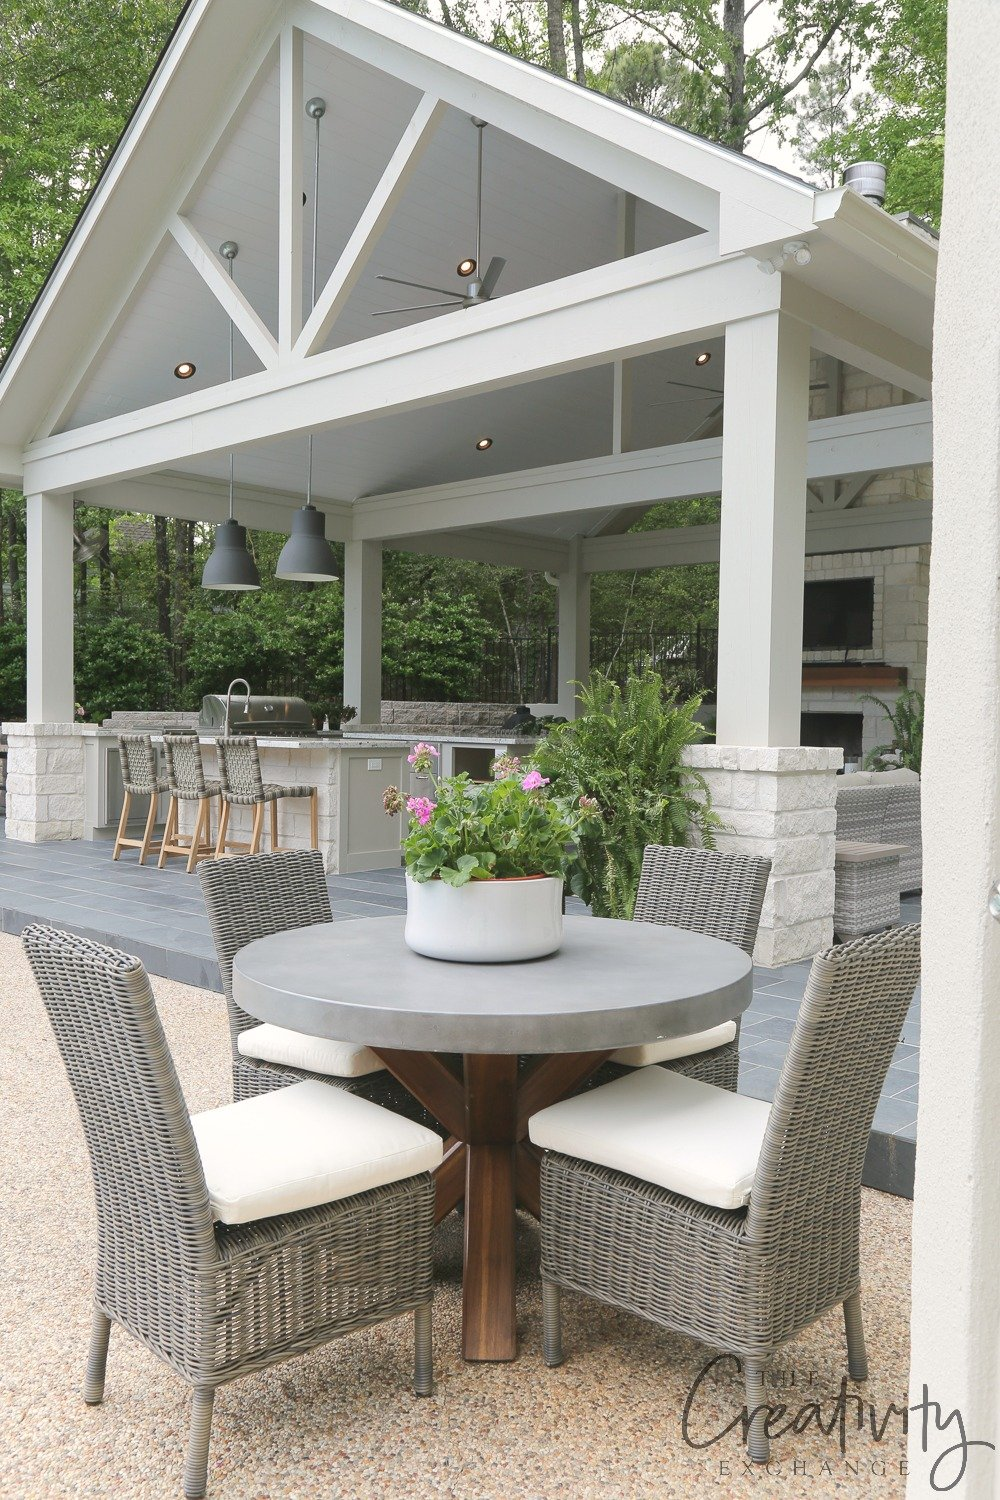 Outdoor kitchen and pool house pavilion.